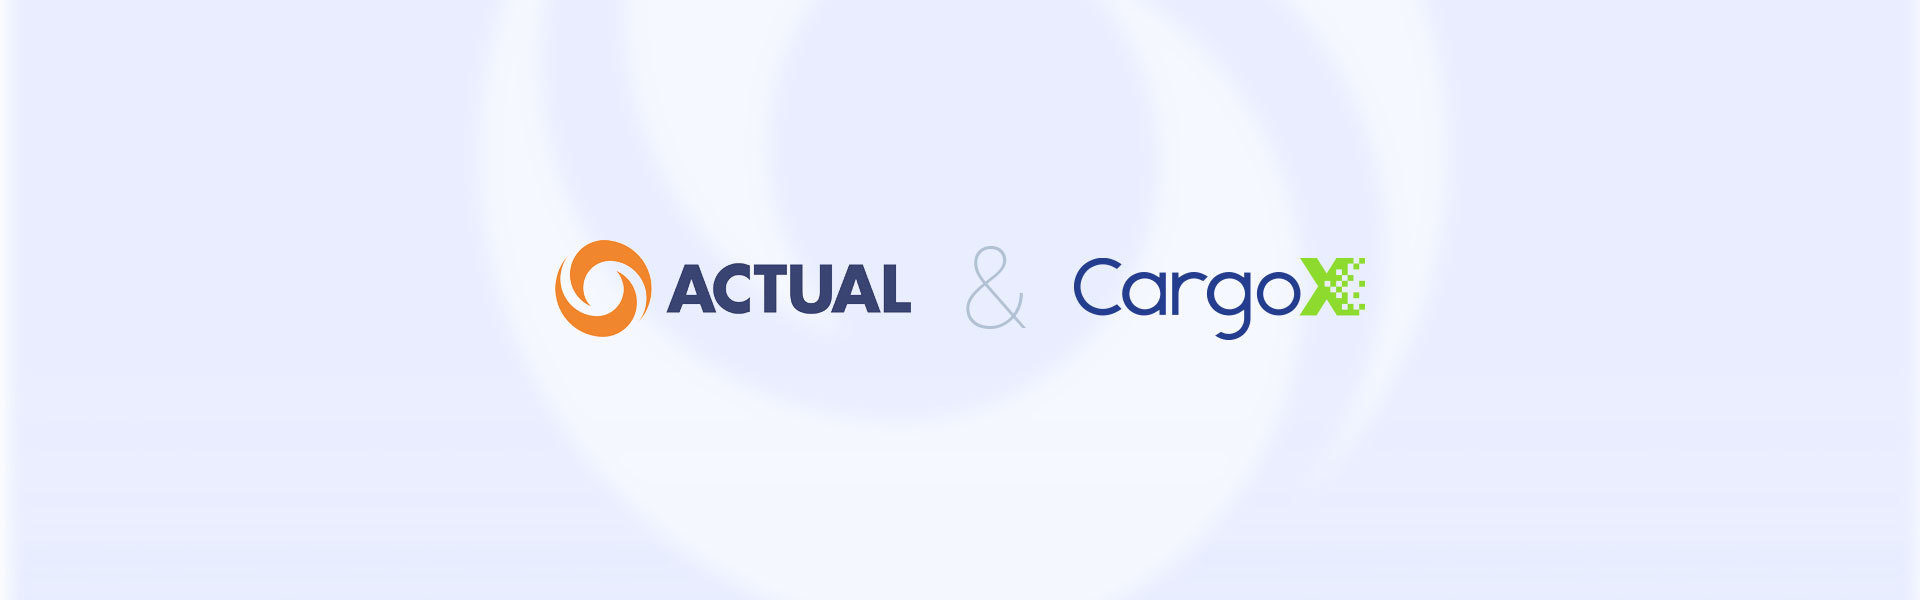 CargoX | CargoX and Actual Group partners in the PORT-Line